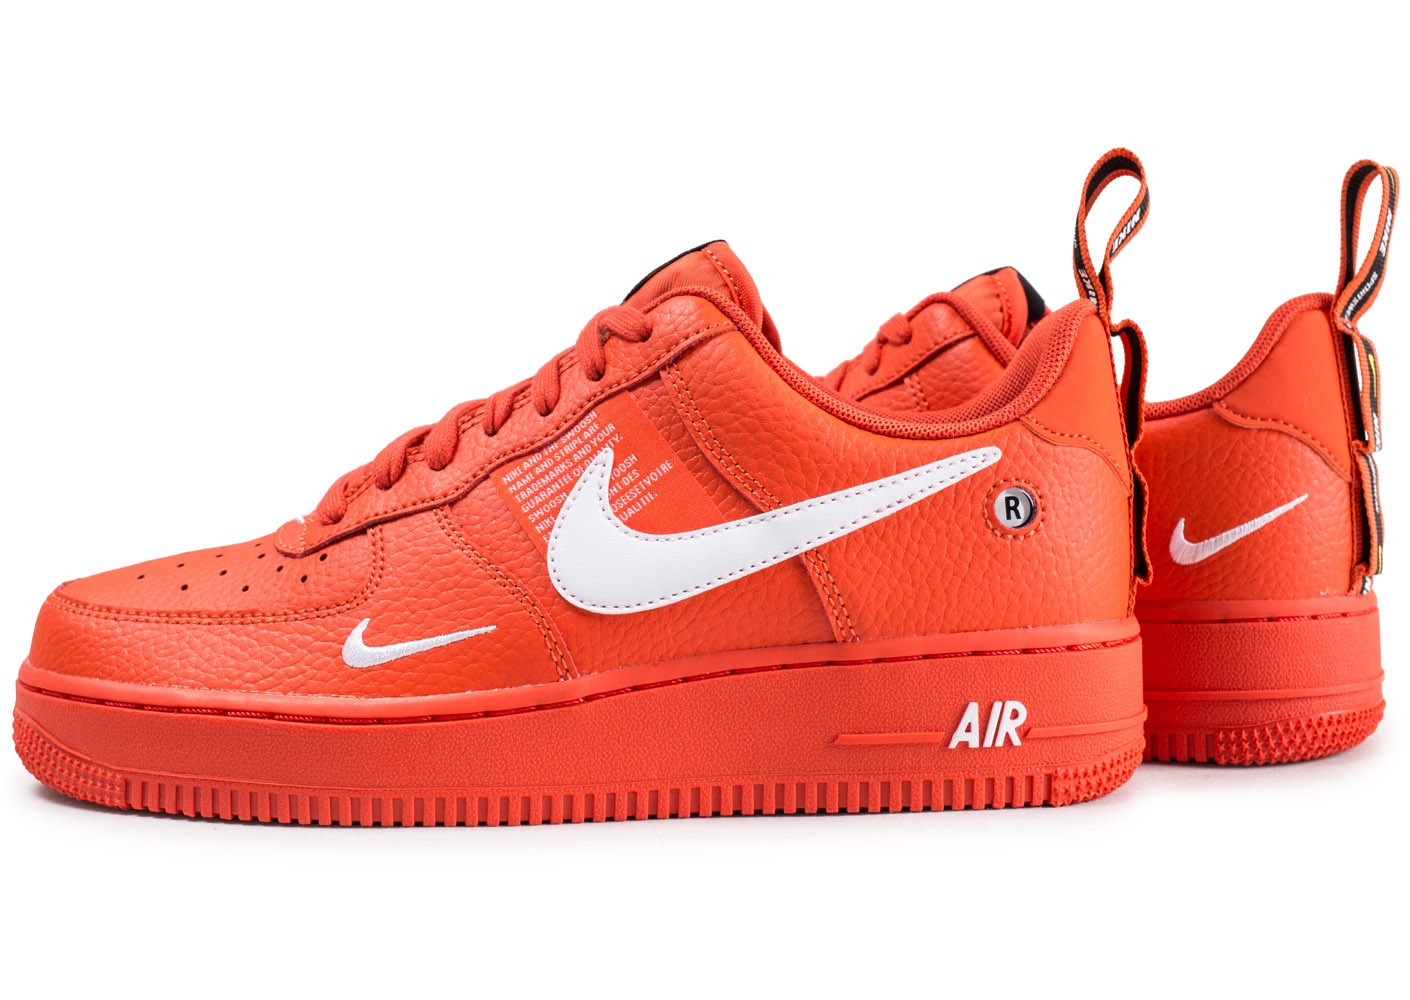 Nike Air Force 1 '07 LV8 Utility orange - Chaussures Baskets ...